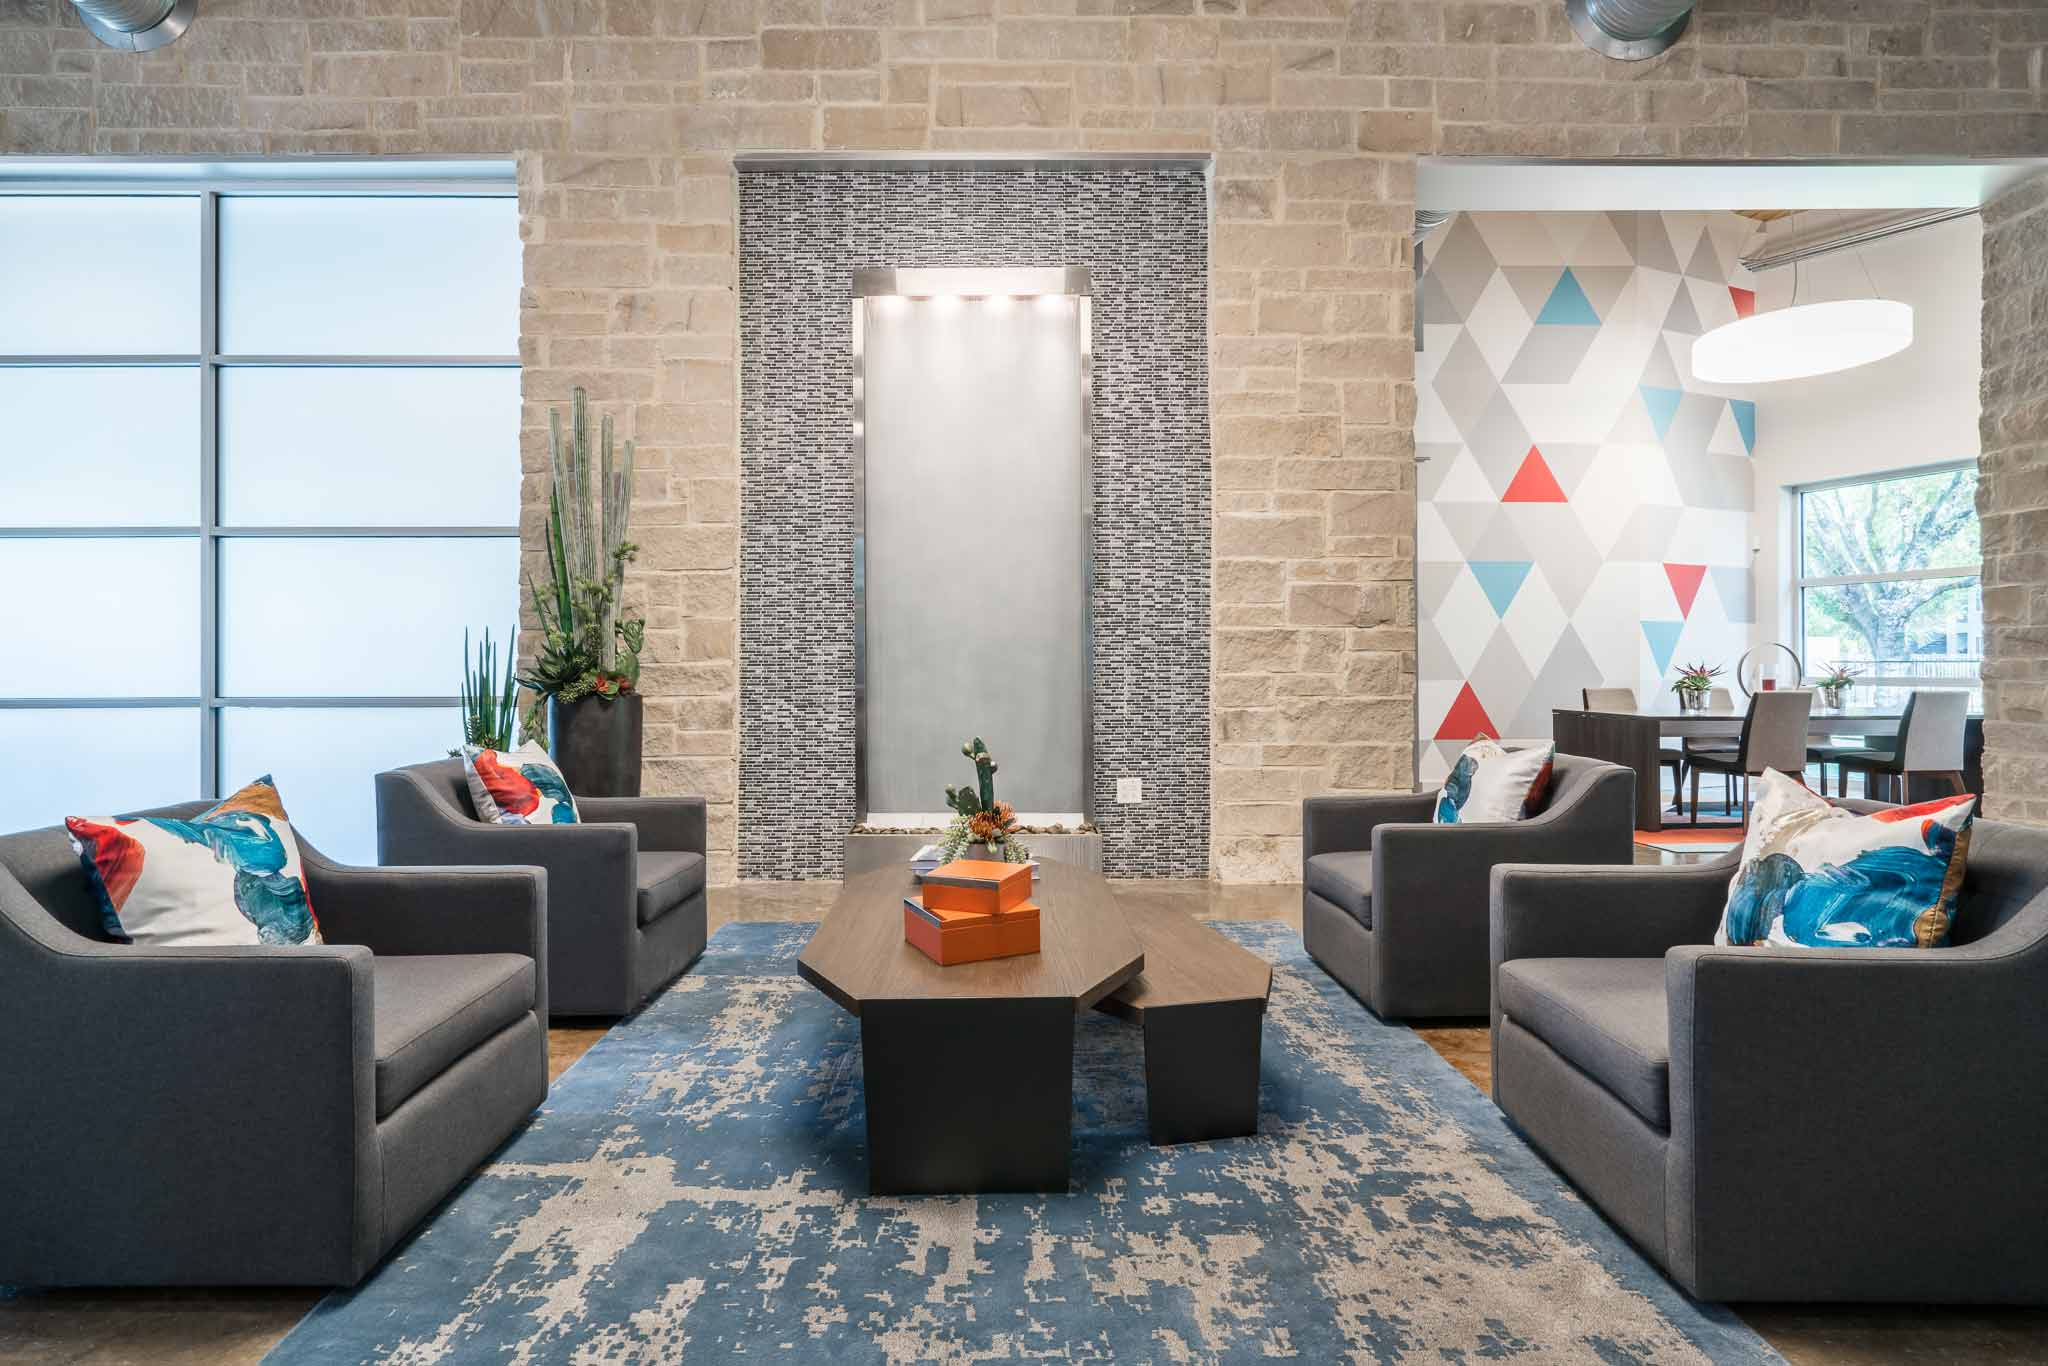 Seating area interior design for busy Austin, TX apartment complex